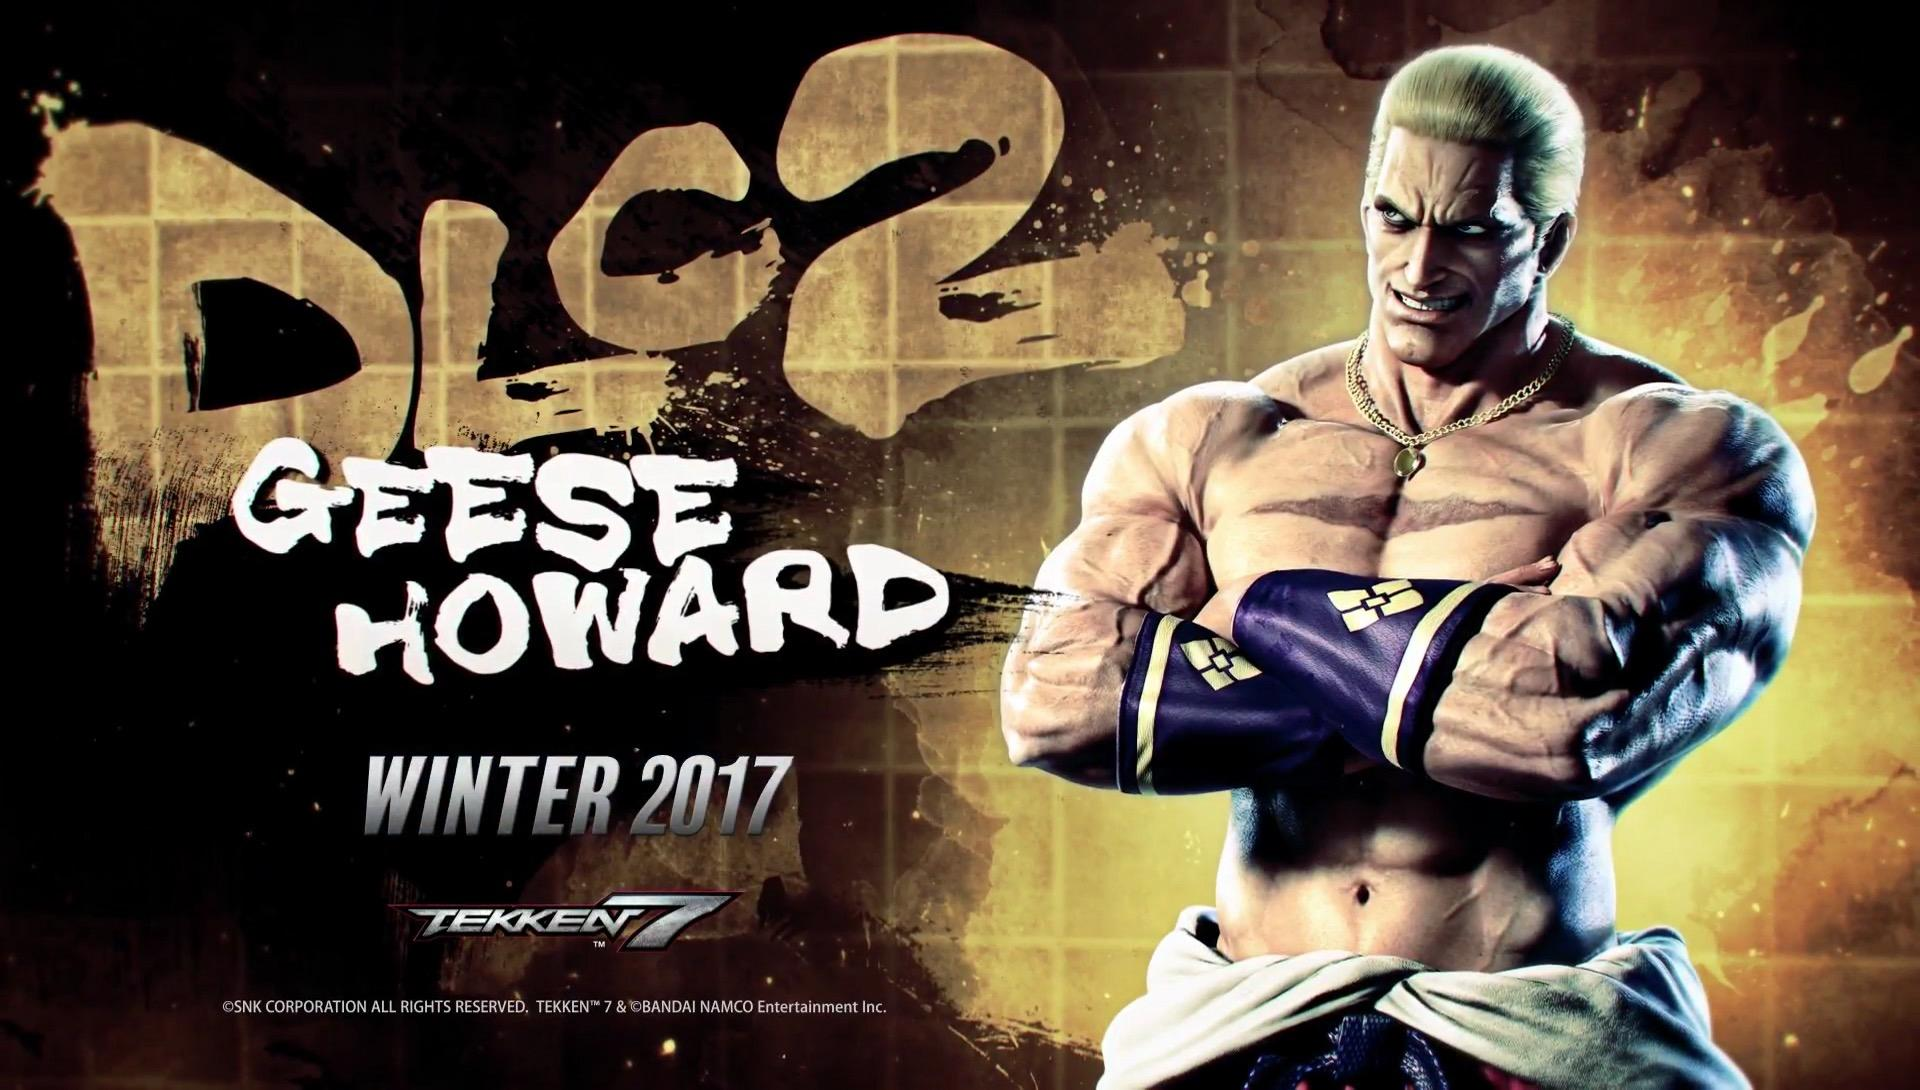 Tekken 7 imports one of SNK's Fatal Fury fighters to its roster